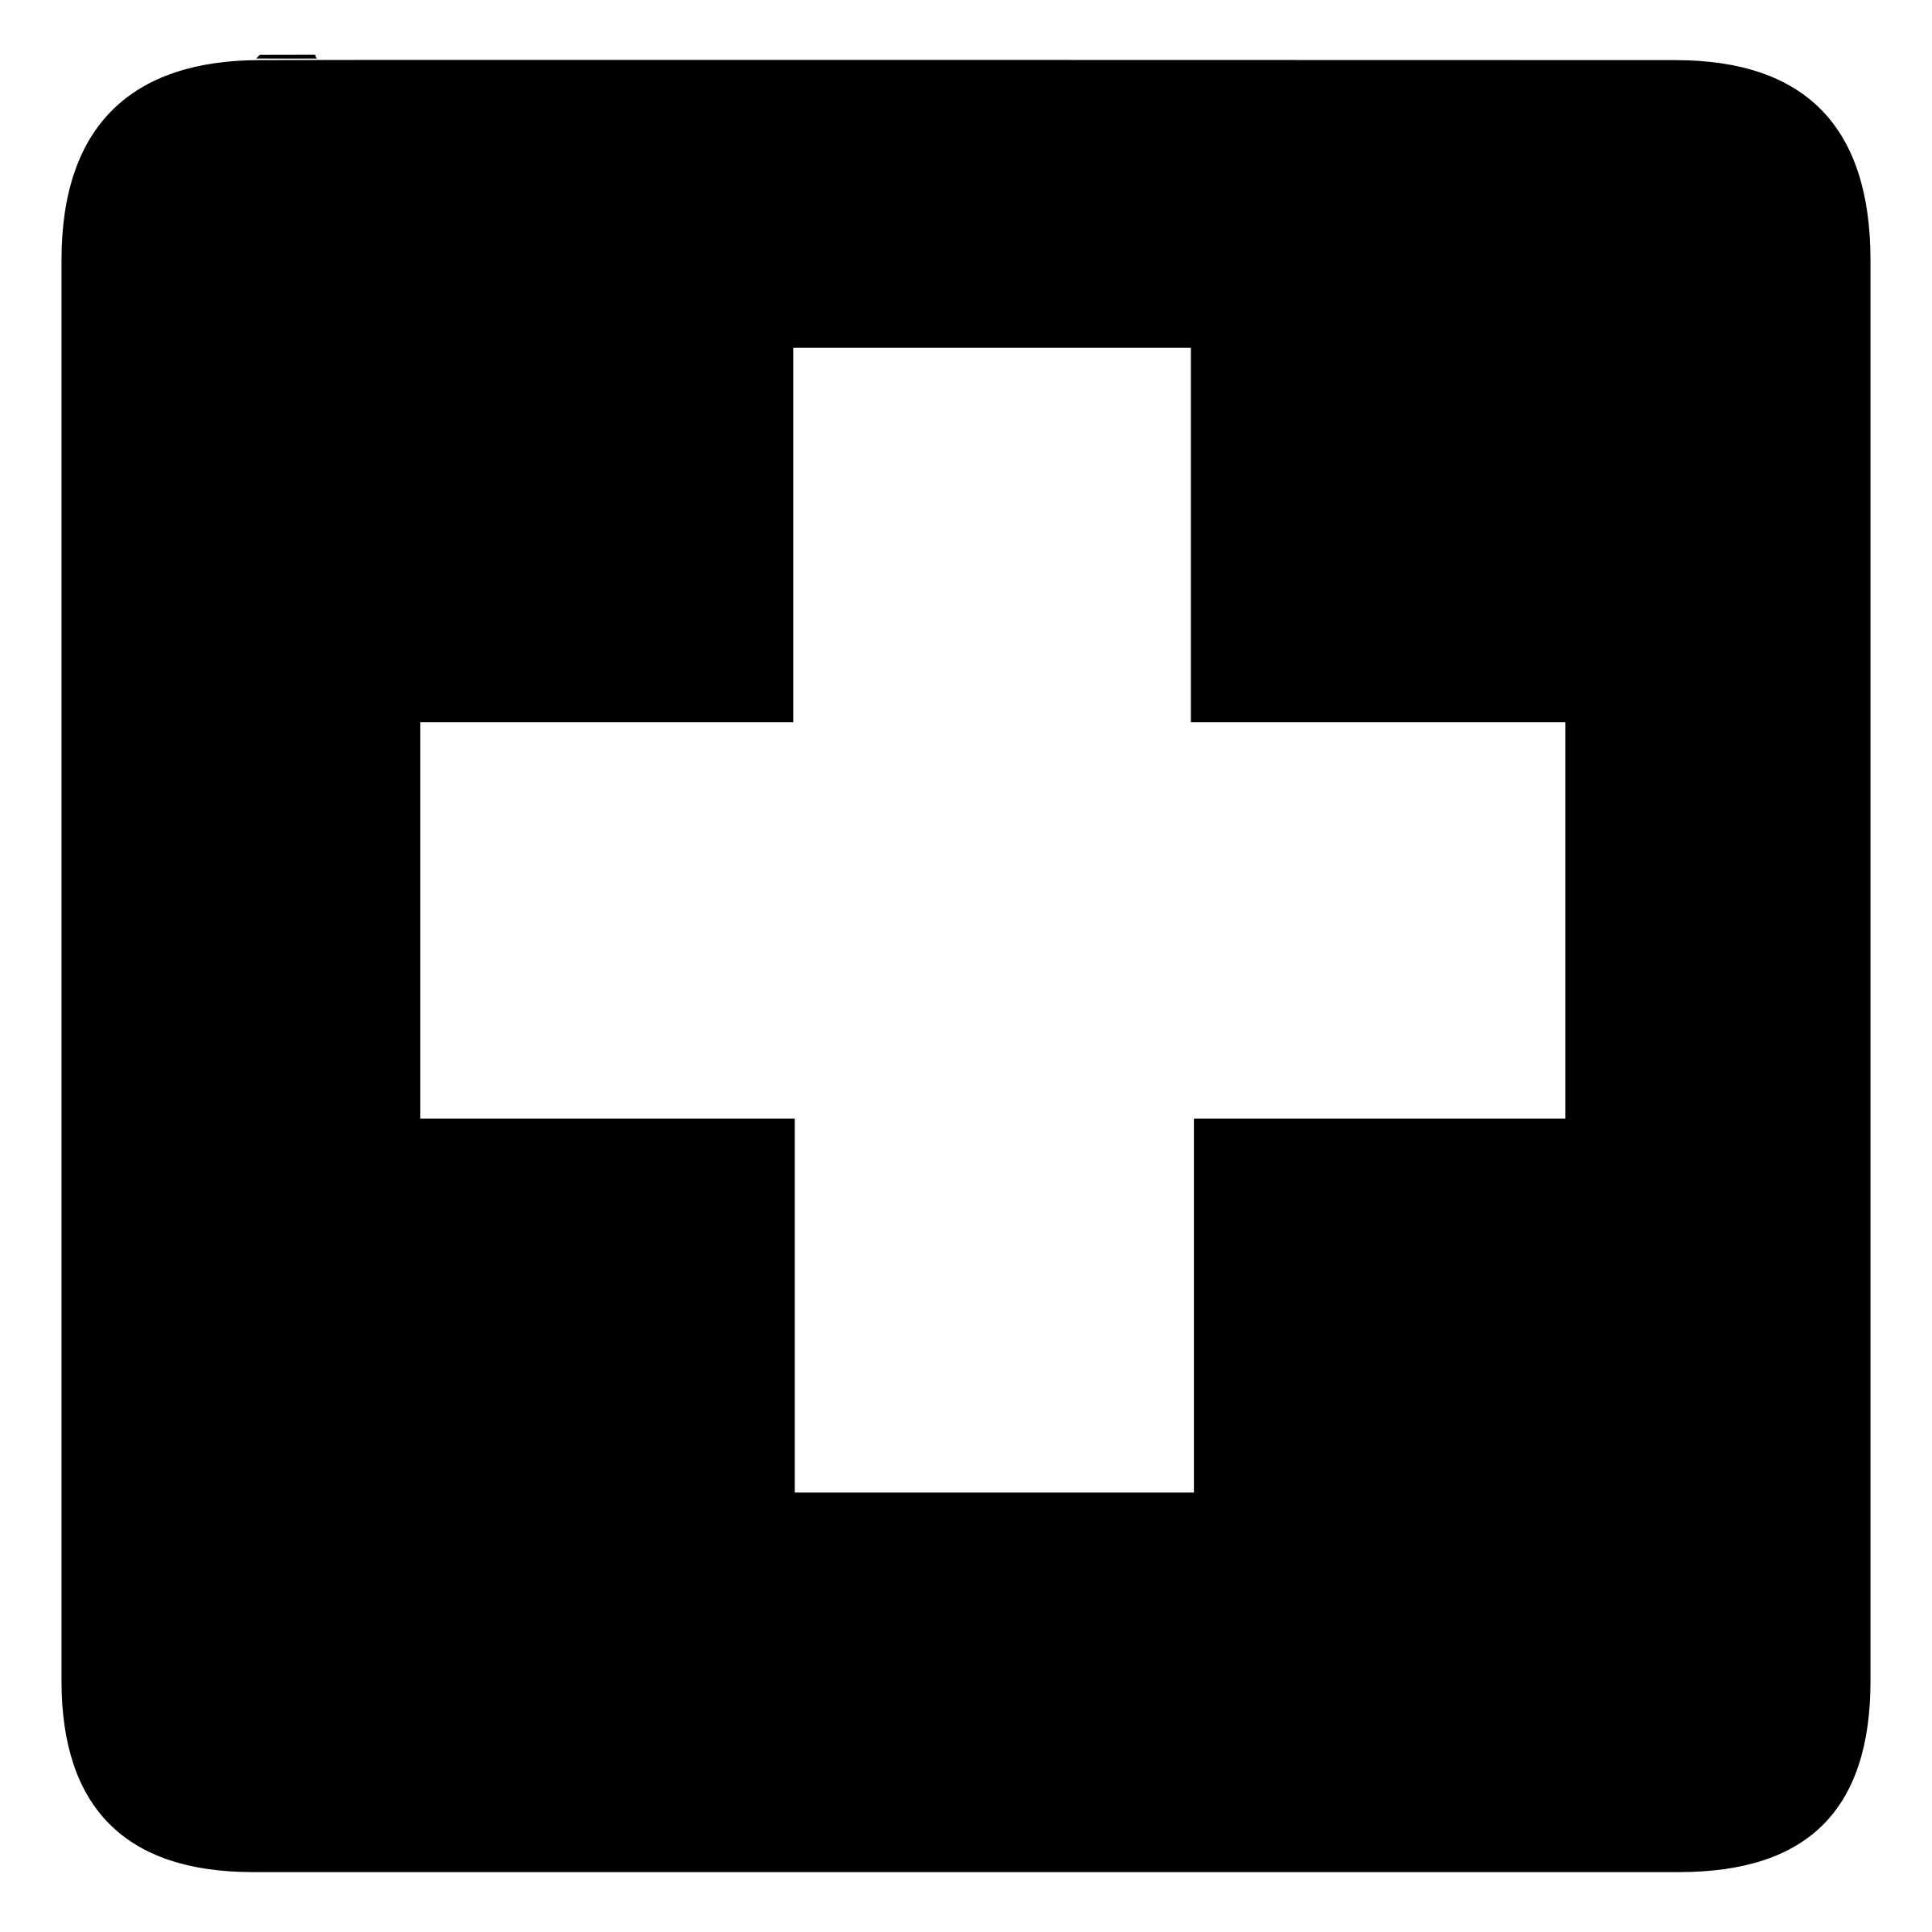 aiga first aid bg by Anonymous